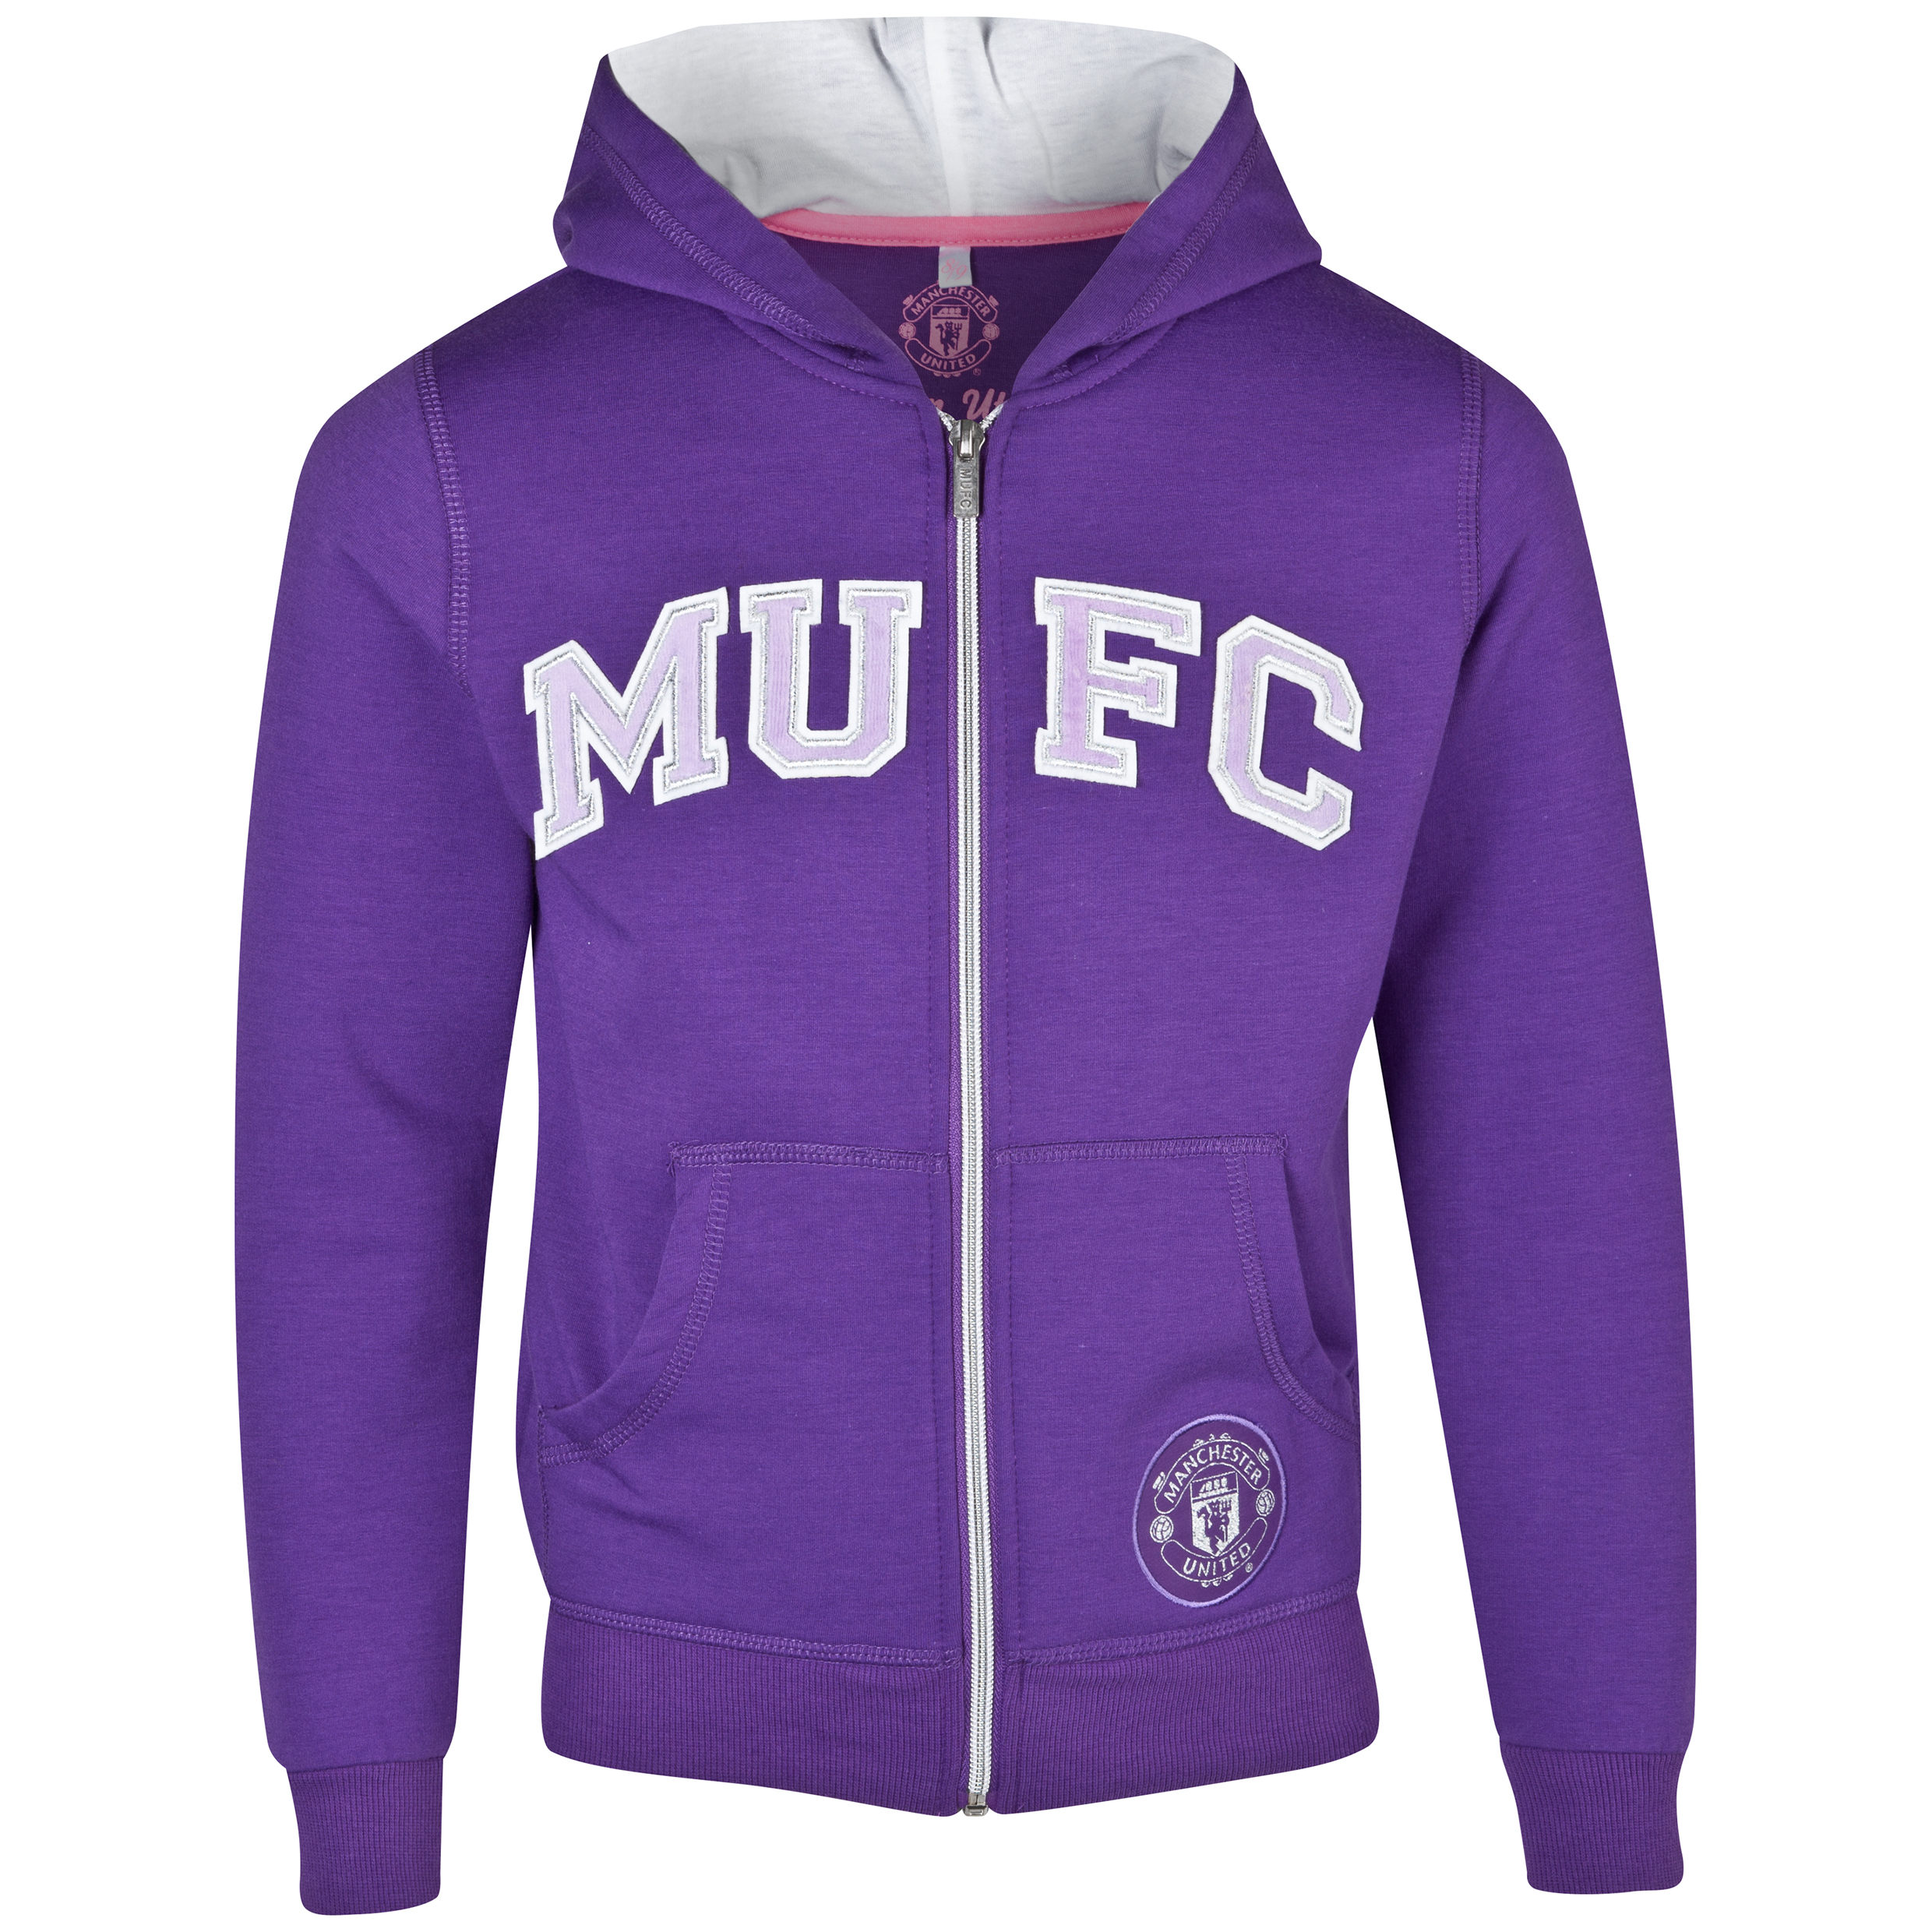 Manchester United Appliqu? Zip Thru Hoody  - Girls Purple